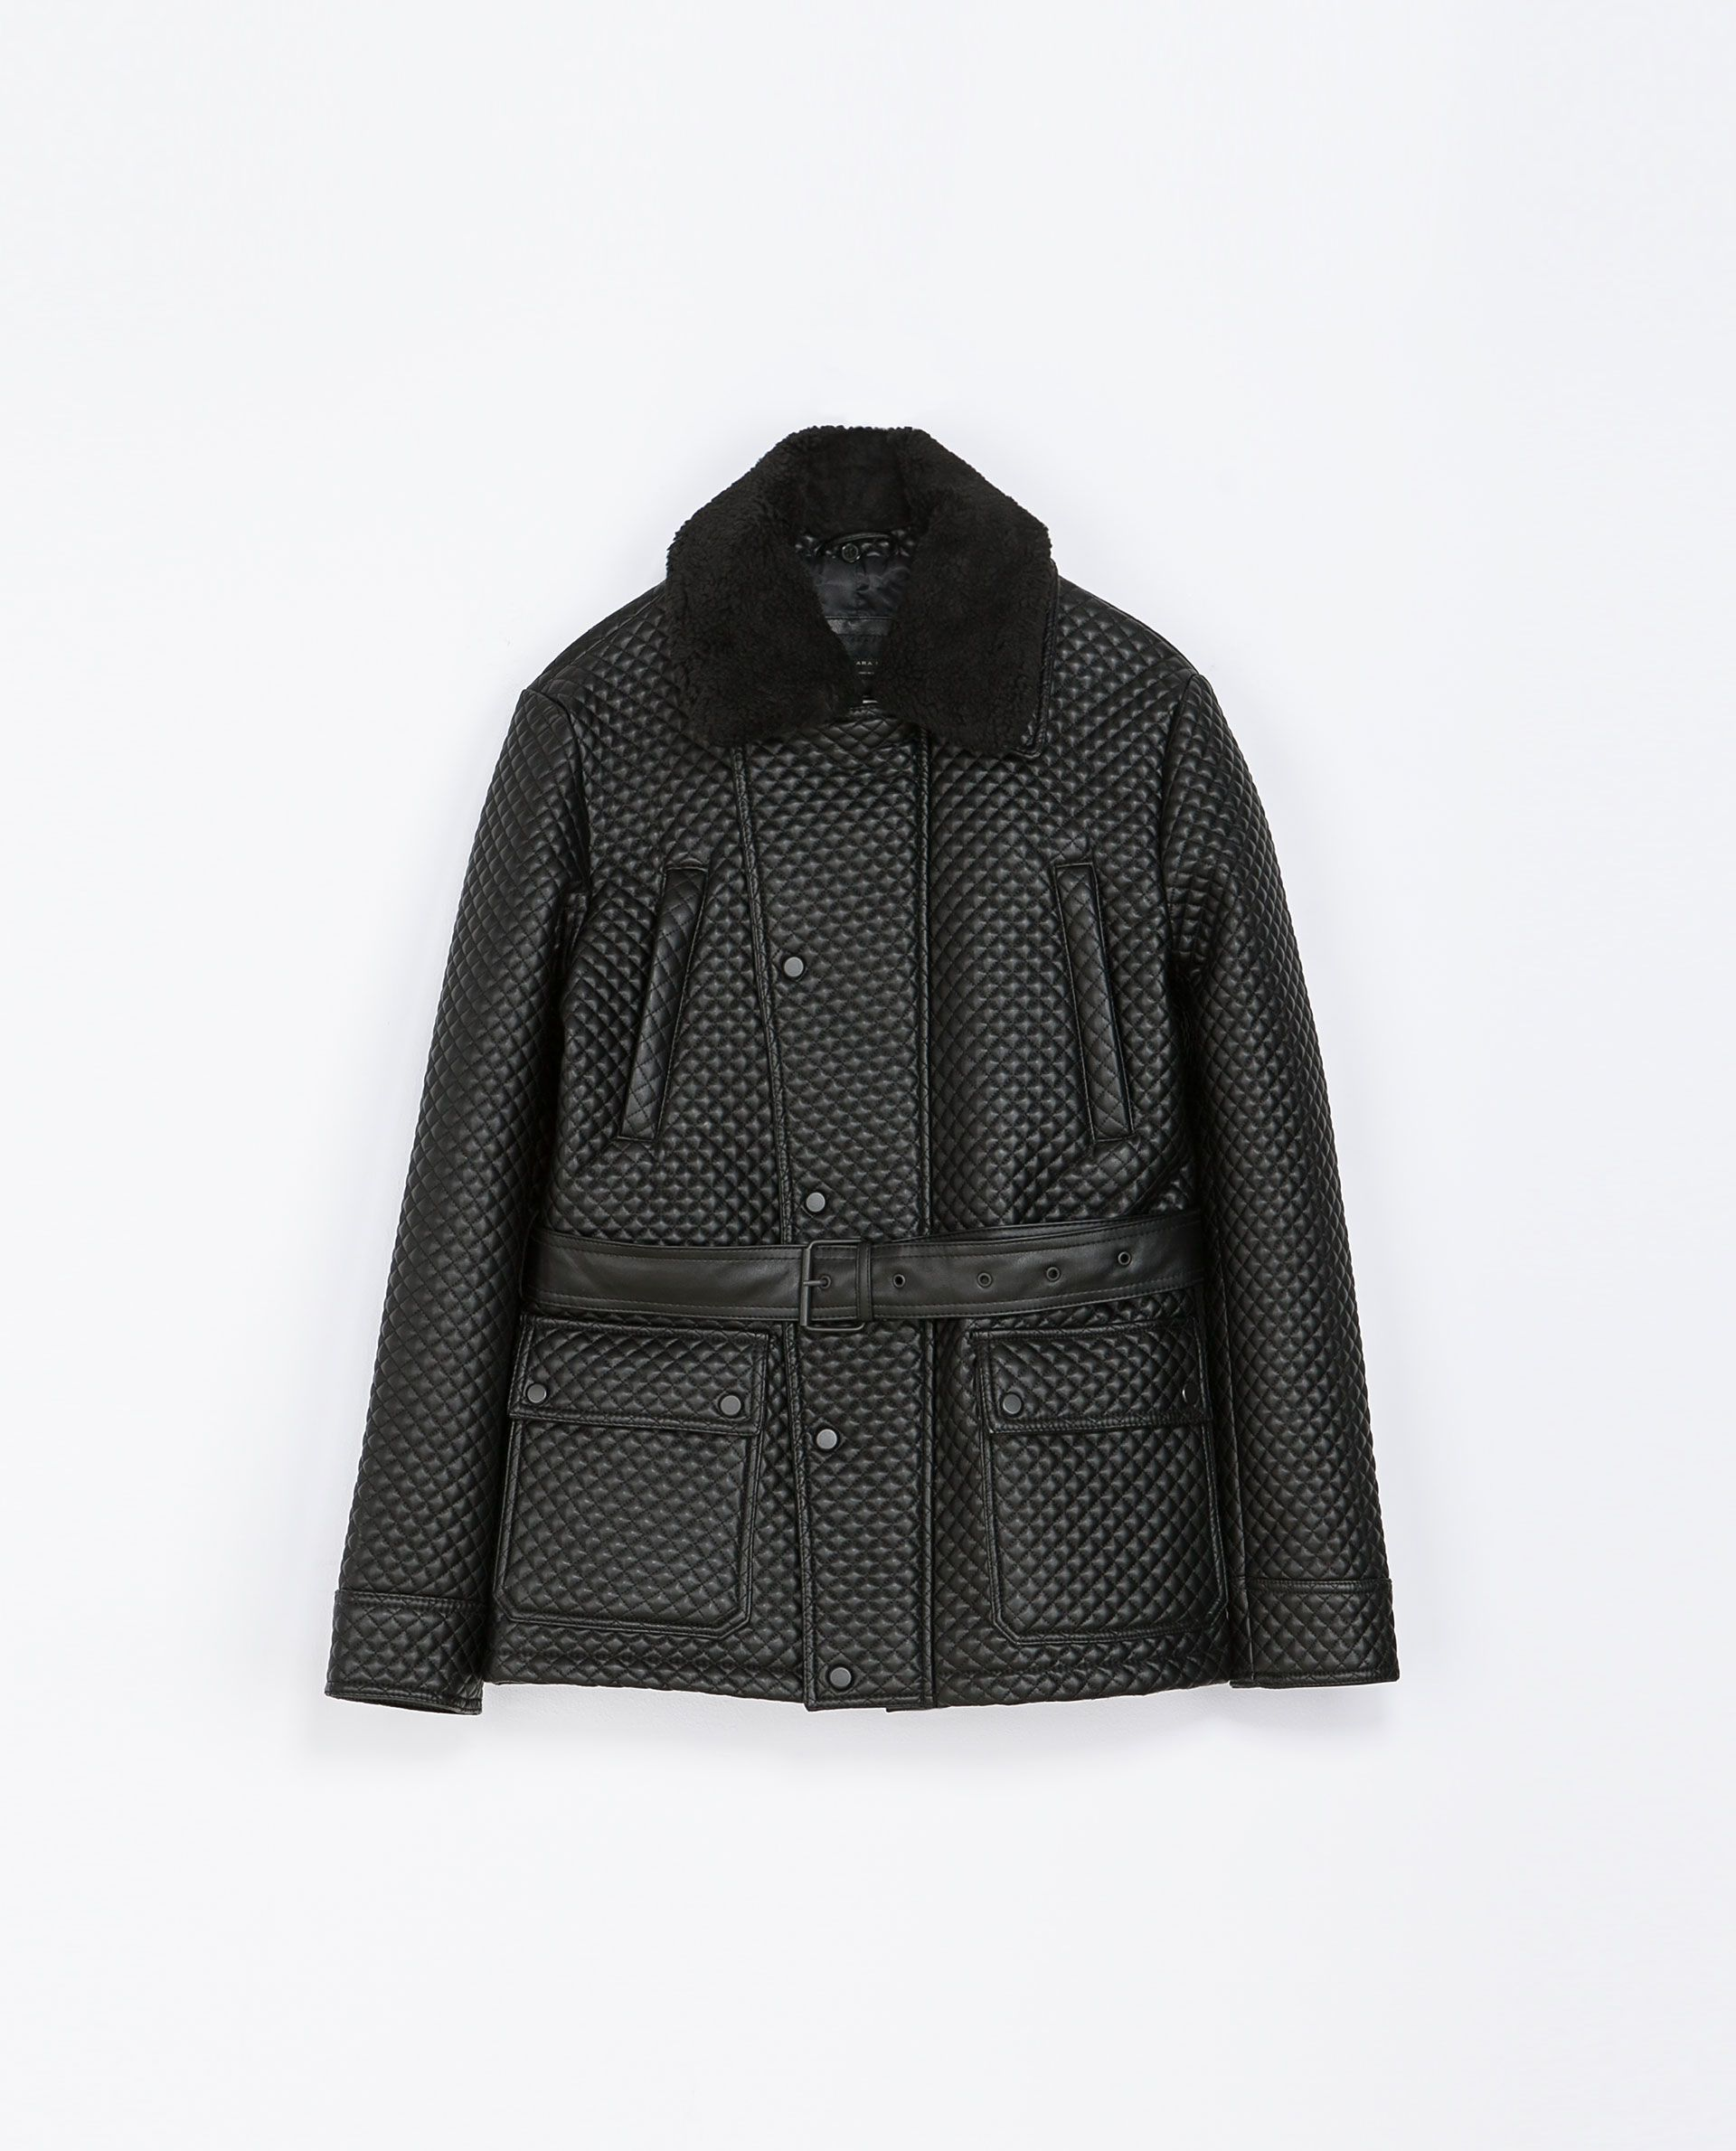 c5564597 Zara DOUBLE BREASTED QUILTED THREE QUARTER LENGTH COAT Ref. 0706/334 179.00  CAD OUTER SHELL BASE FABRIC: 50% POLYESTER, 50% VISCOSE COATING: 100% ...